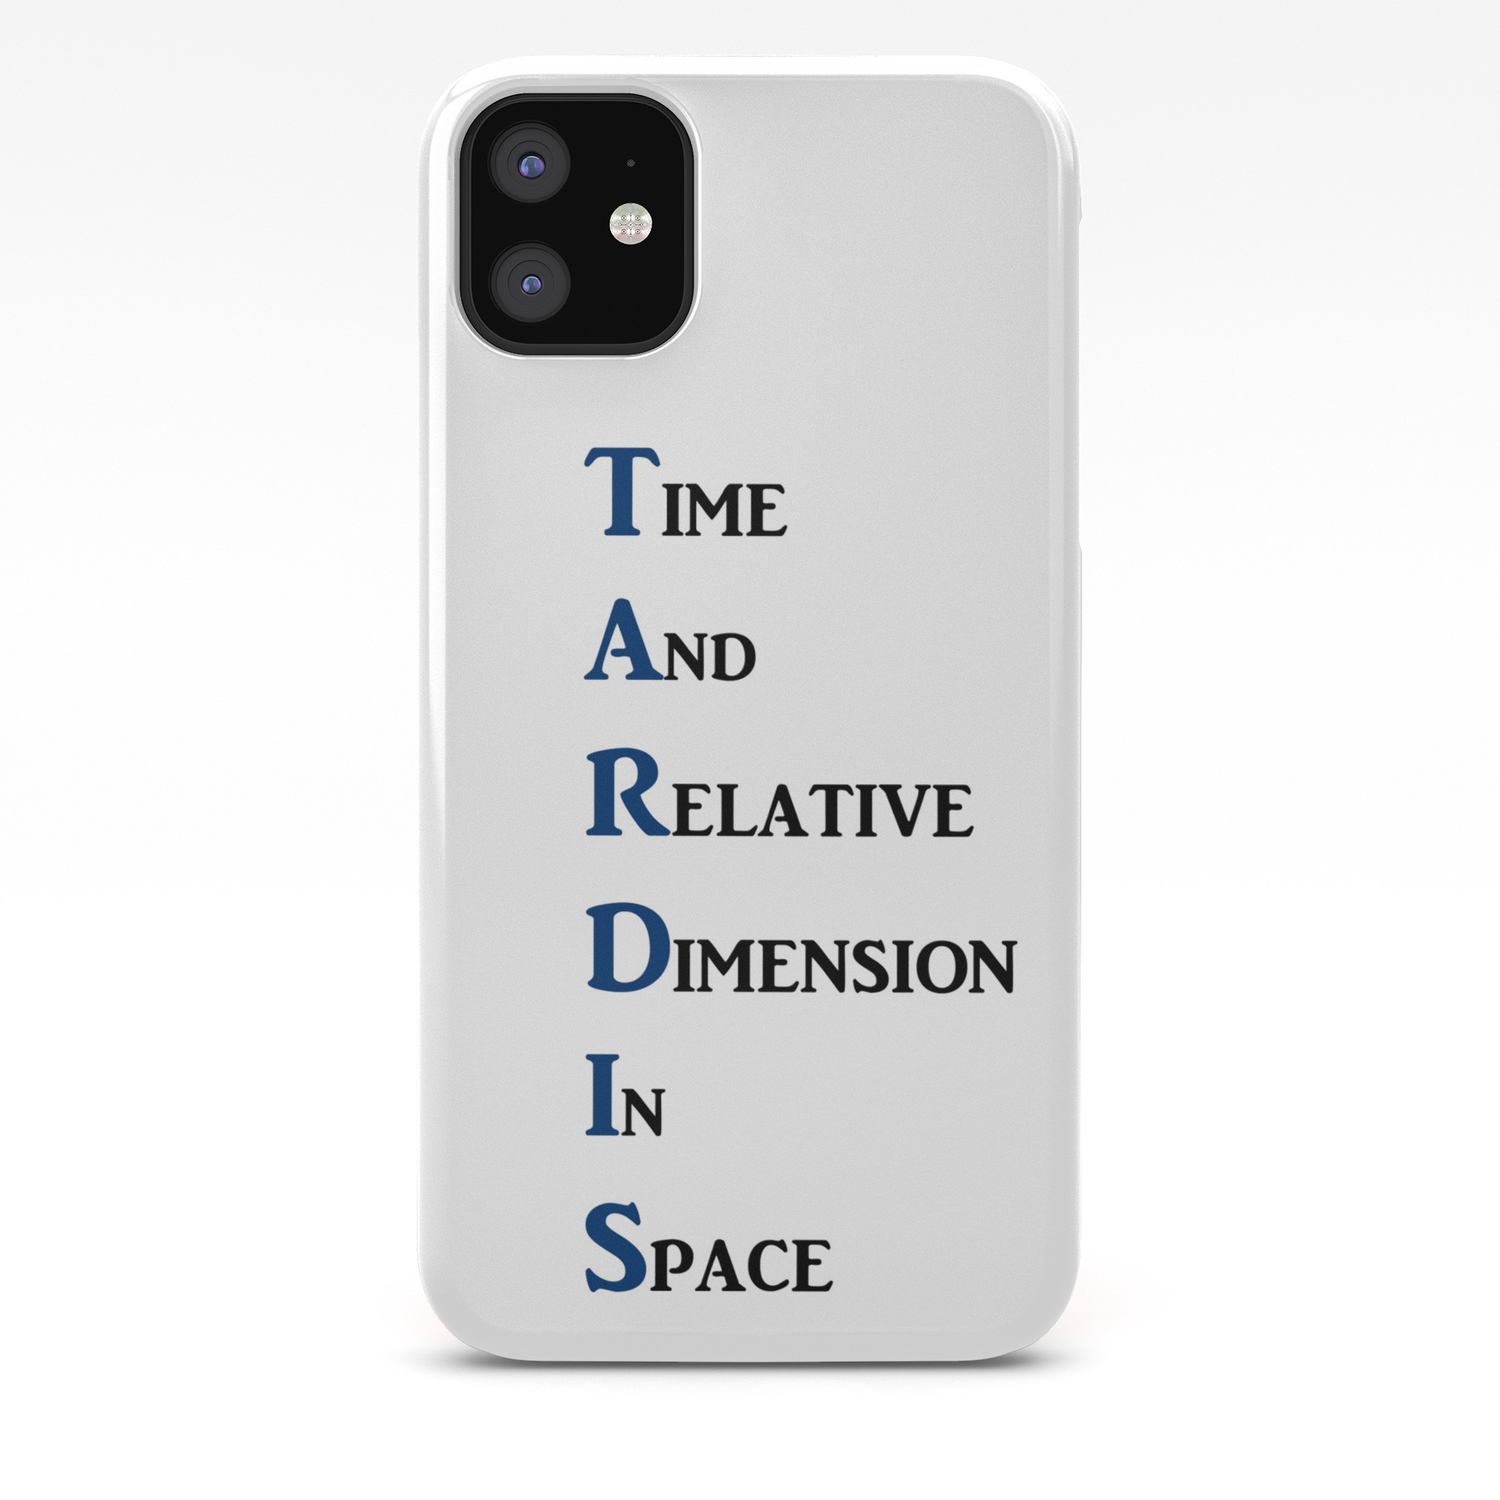 Doctor Who Tardis In Space iphone case